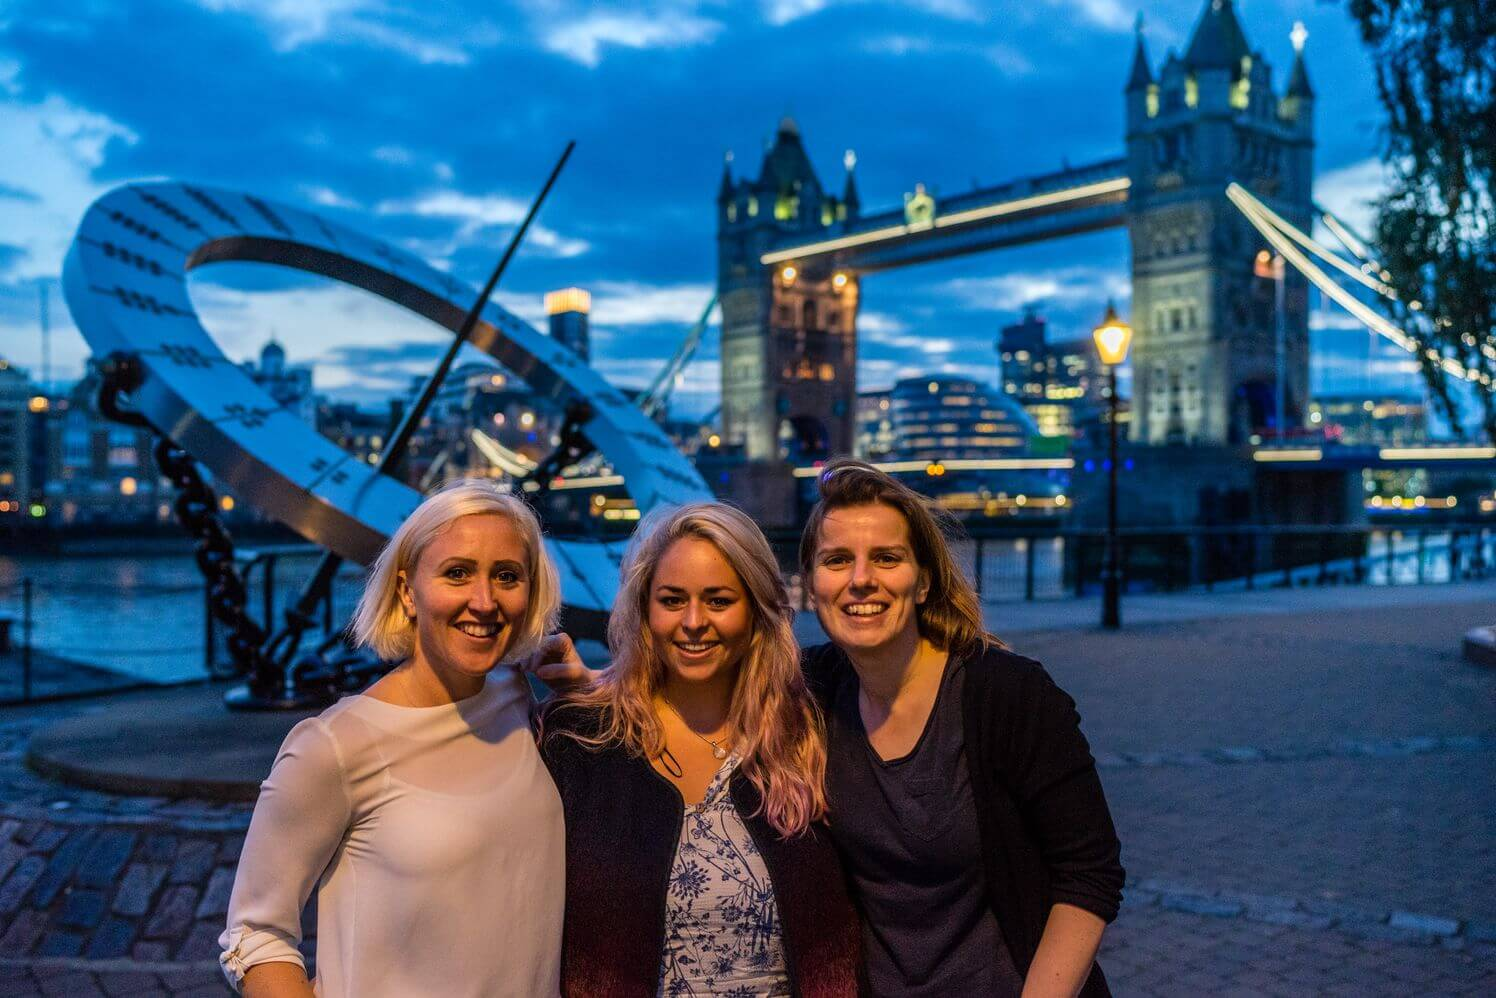 Pictured alongside Caroline- Susan Ronaldson and Jess Rego make up the other two thirds of team Status Row.